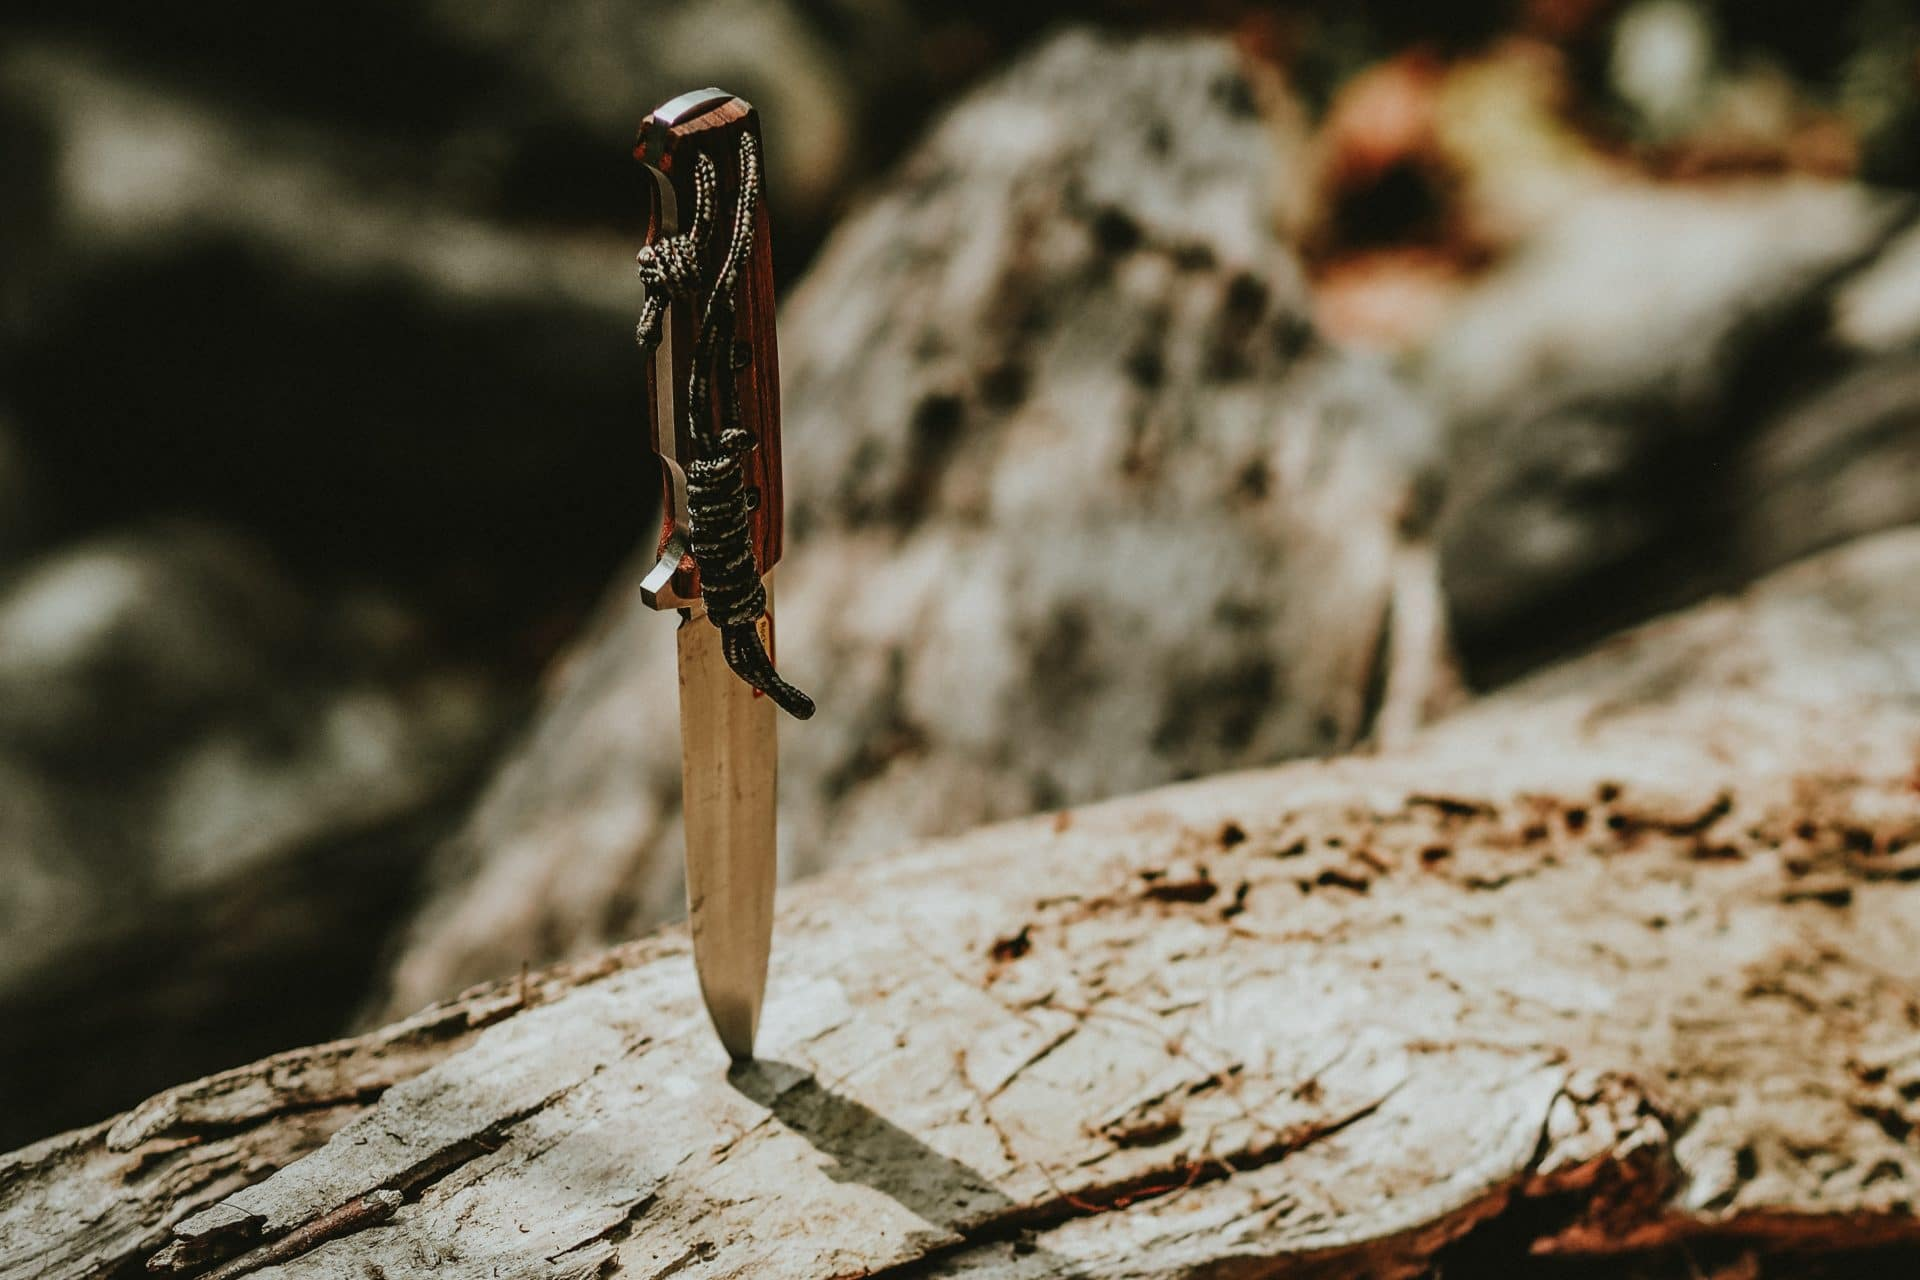 pockeT knife stuck in a wood